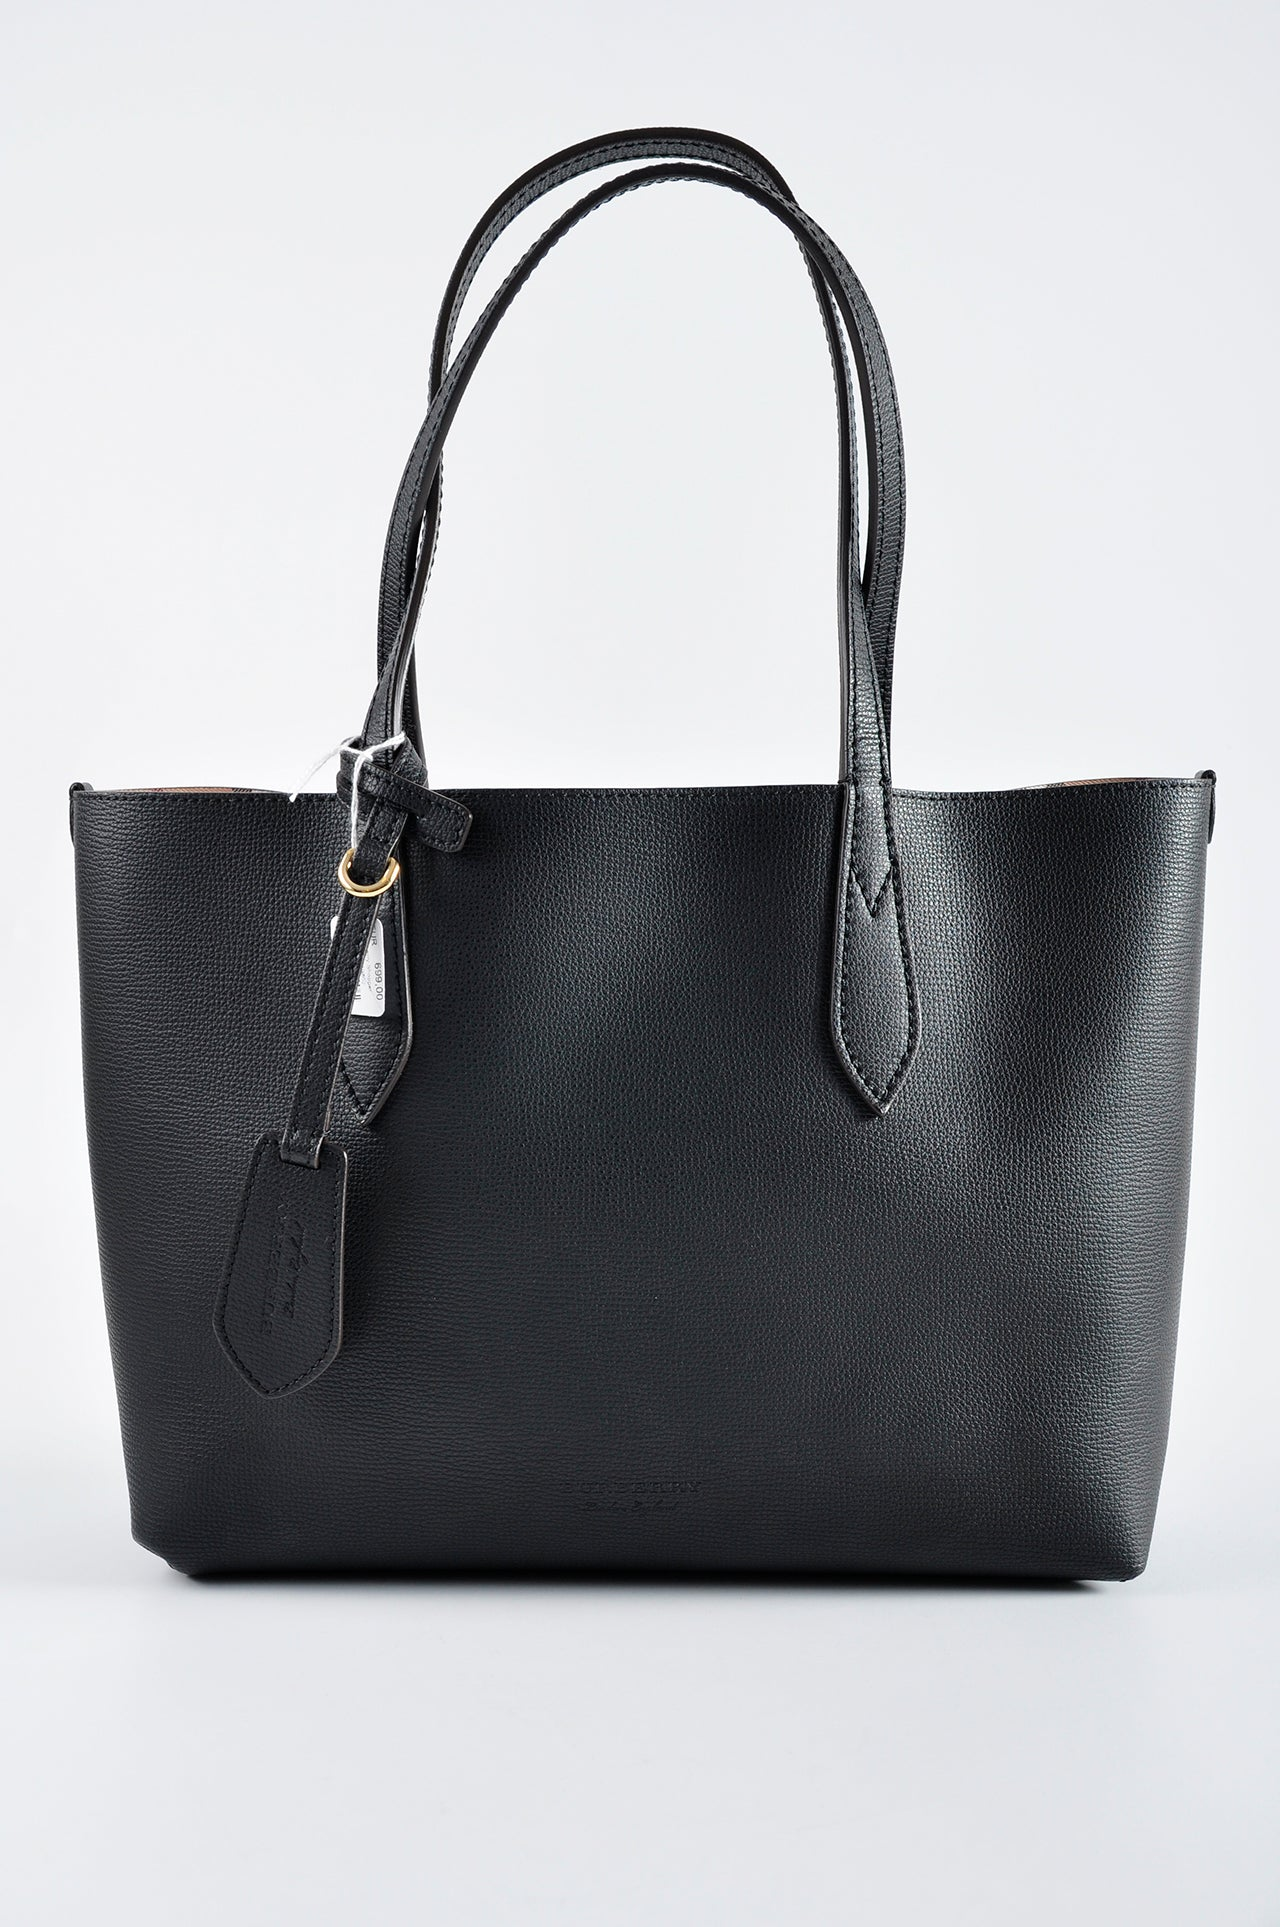 Burberry Medium Reversible Tote in Haymarket Check and Leather - Glampot